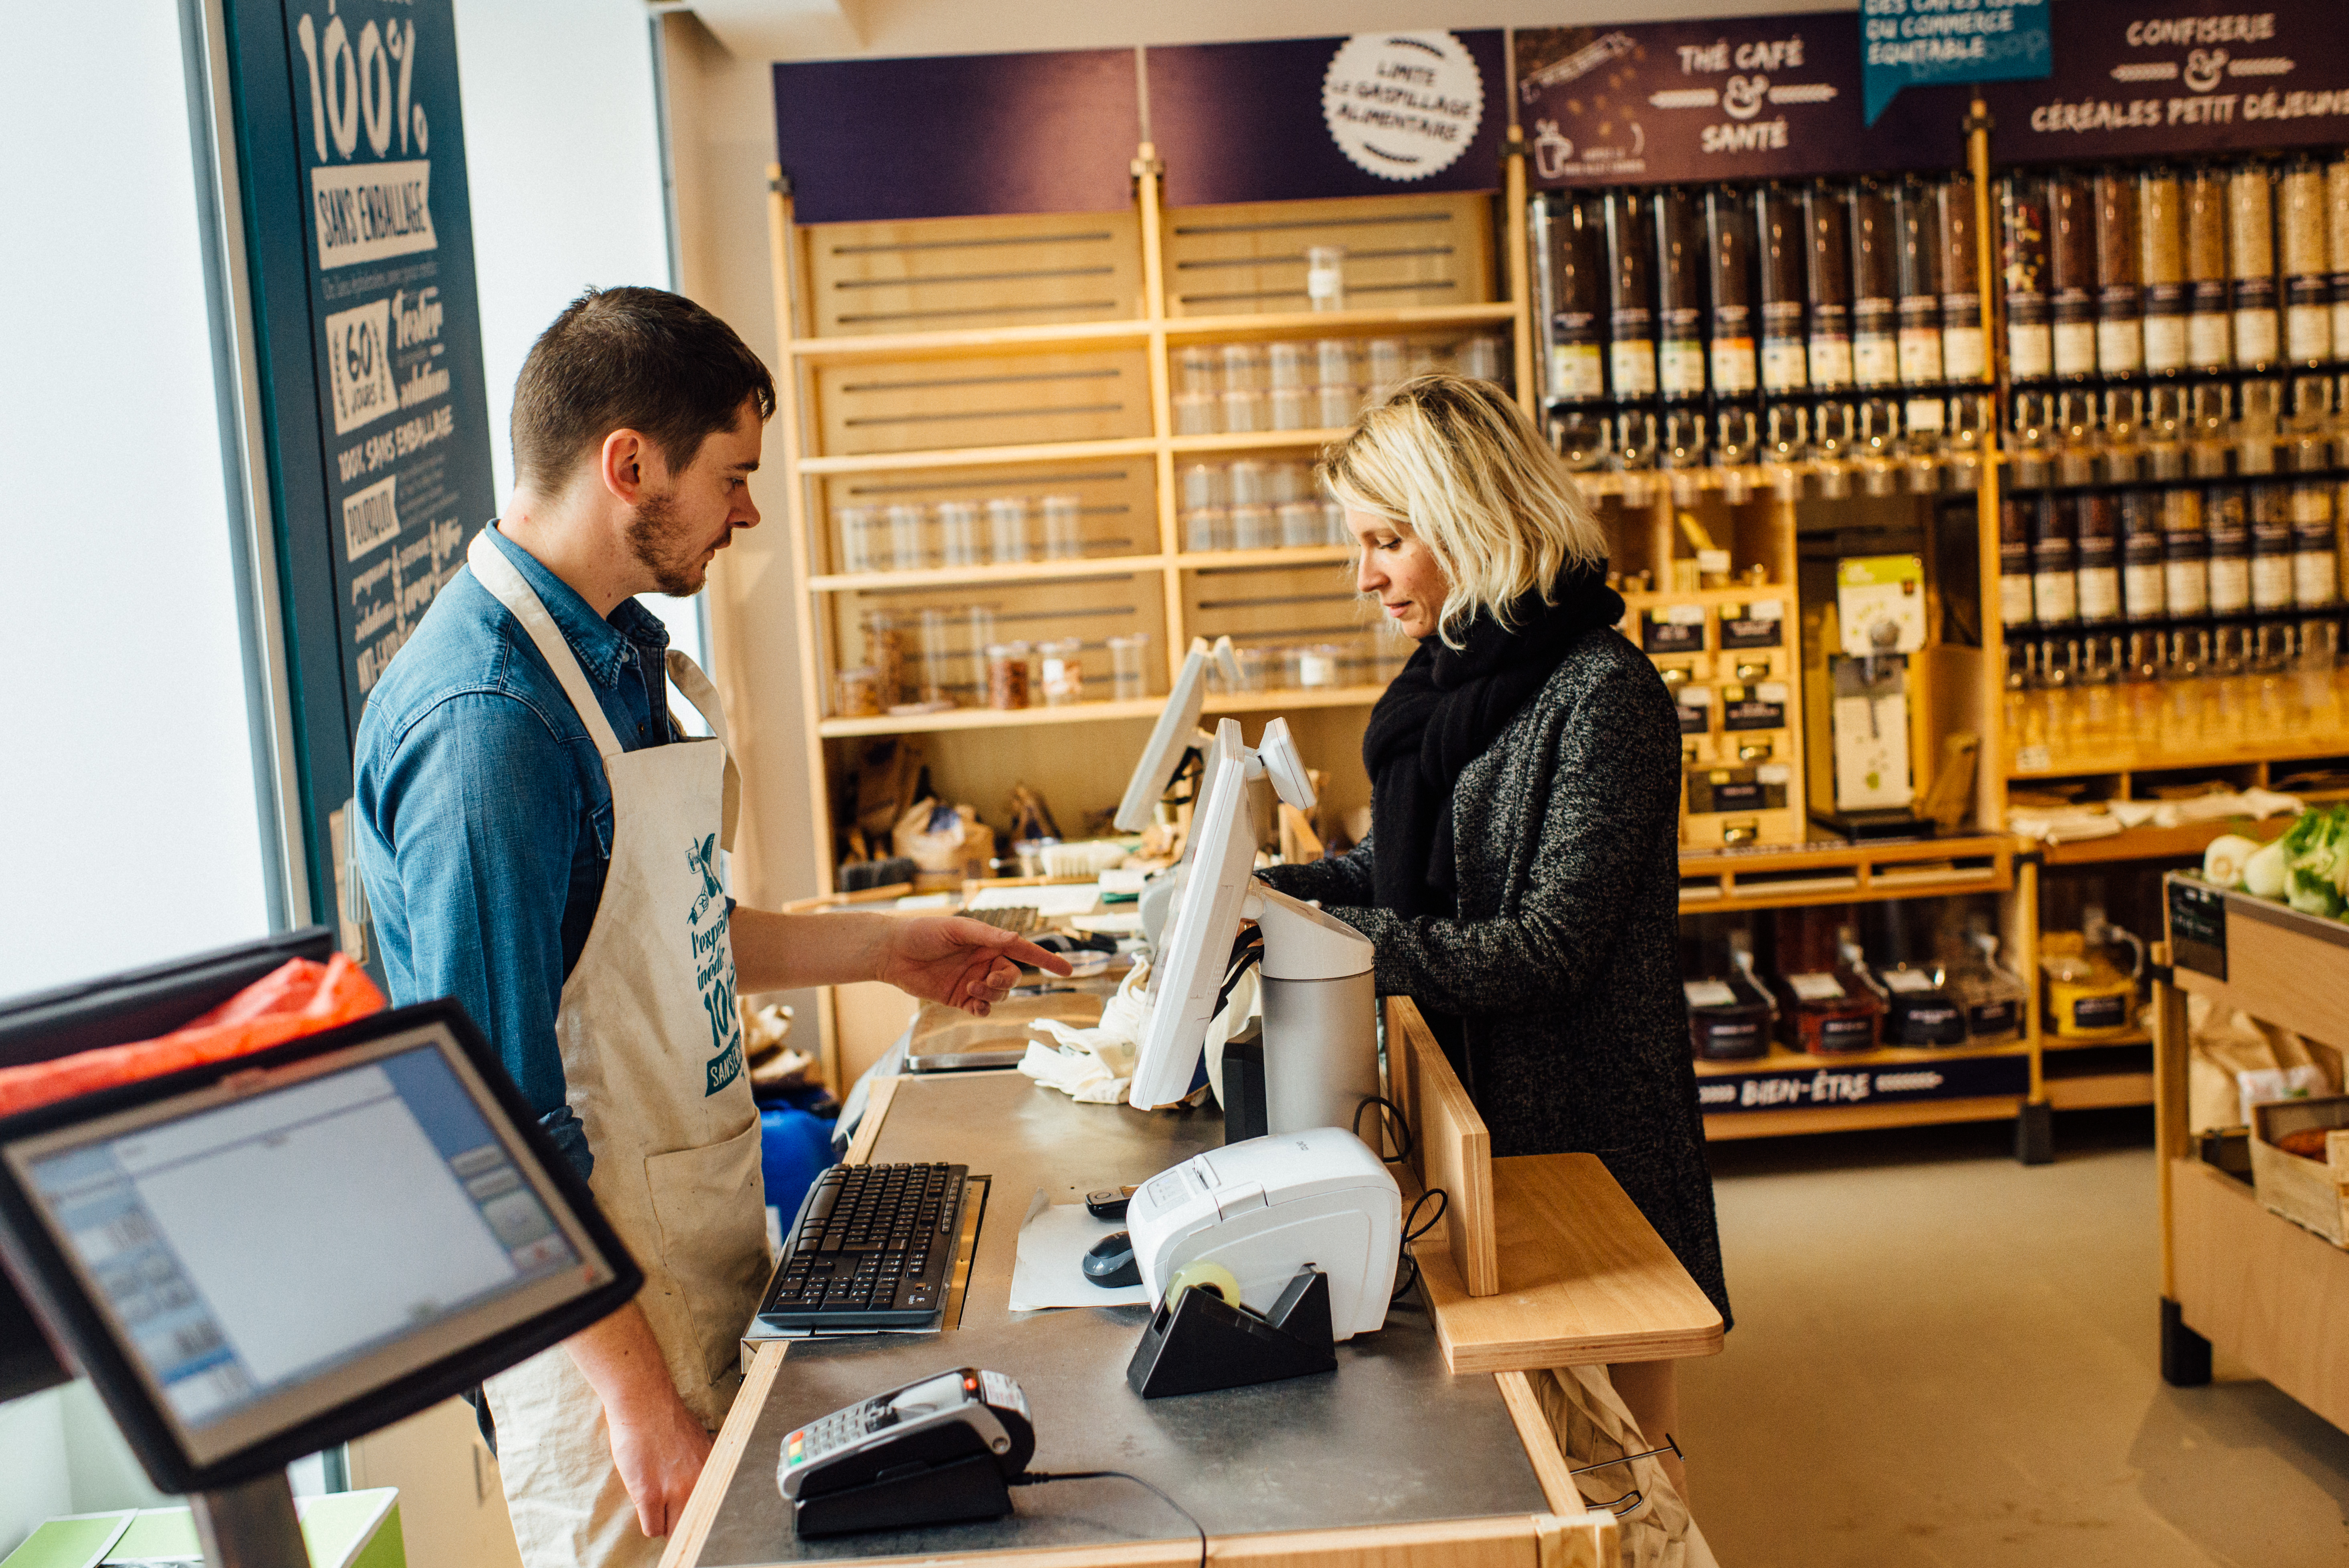 HiP Paris blog. BioCoop 21, Paris' first bag-free organic bulk shop. Not a plastic bag in sight at this check-out counter.